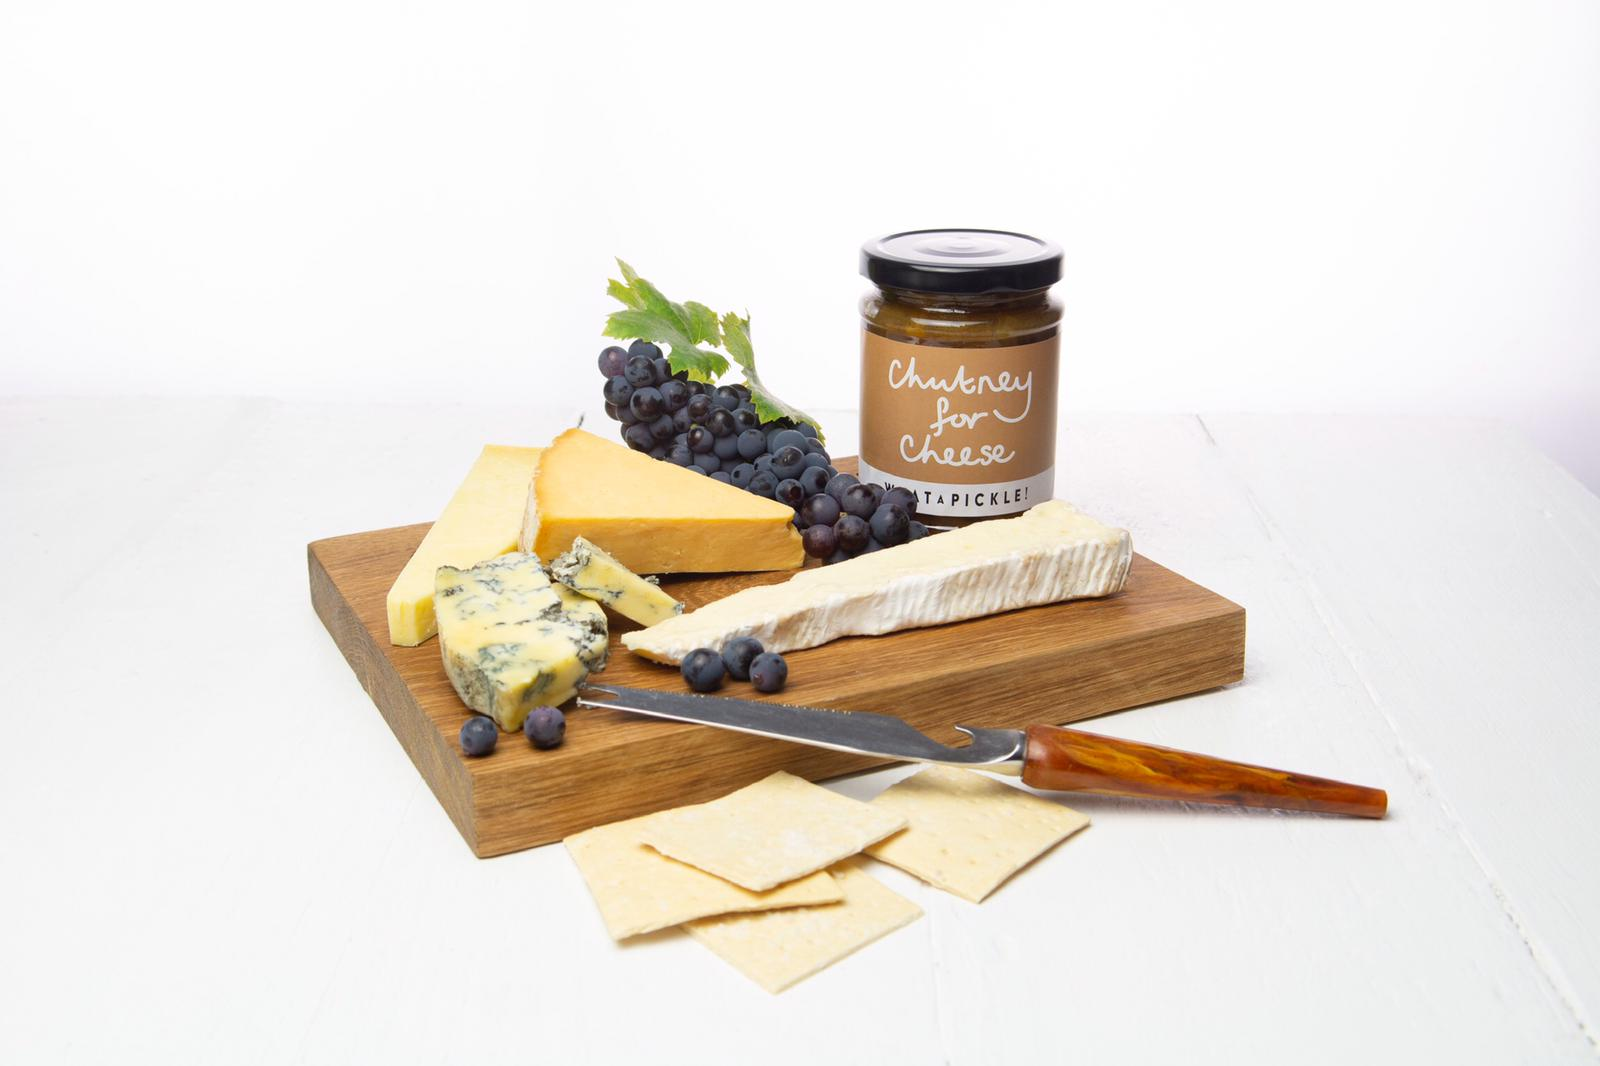 Chutney for Cheese and Crackers Gift Box